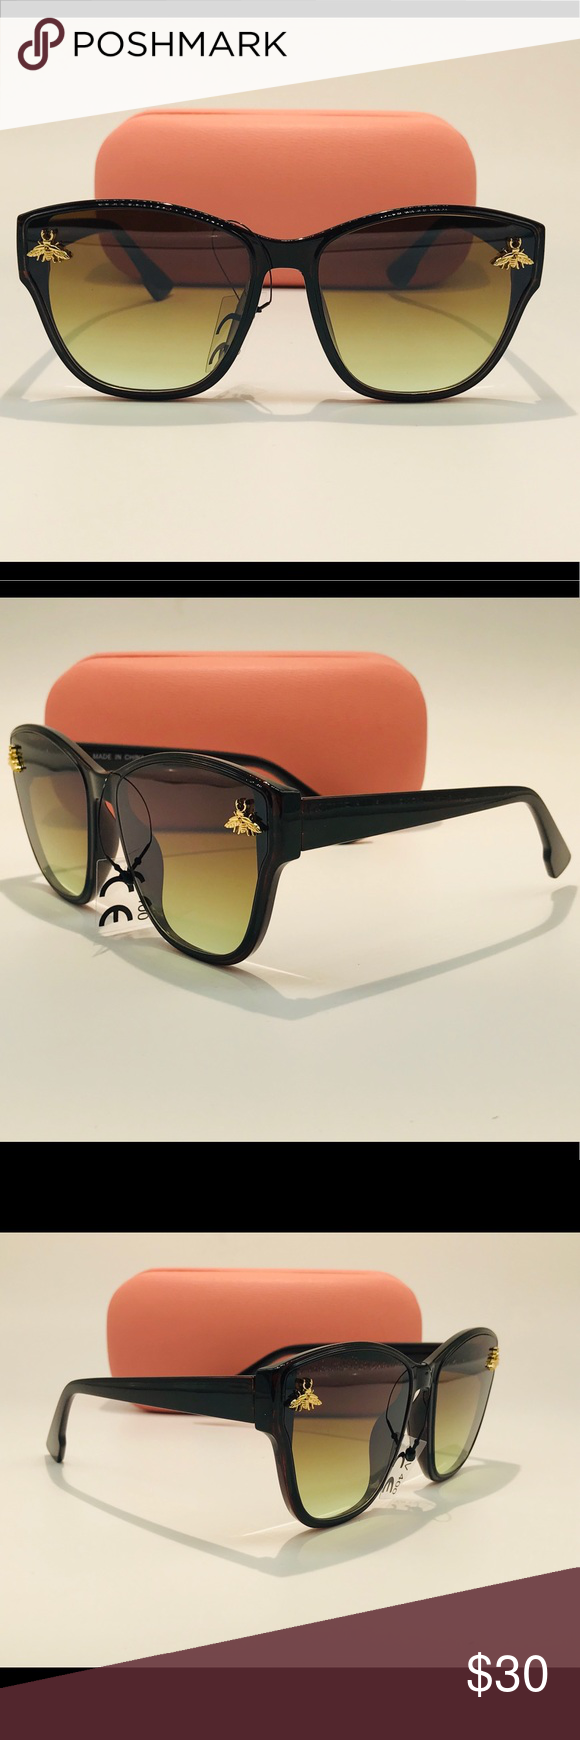 Stylish Shades Stylish Shades A ll Sunglasses include the following 1Pair of Sunglasses 1 Hard Carrying Case 1Soft Carrying Case that doubles as a cleaning cloth Accessor...